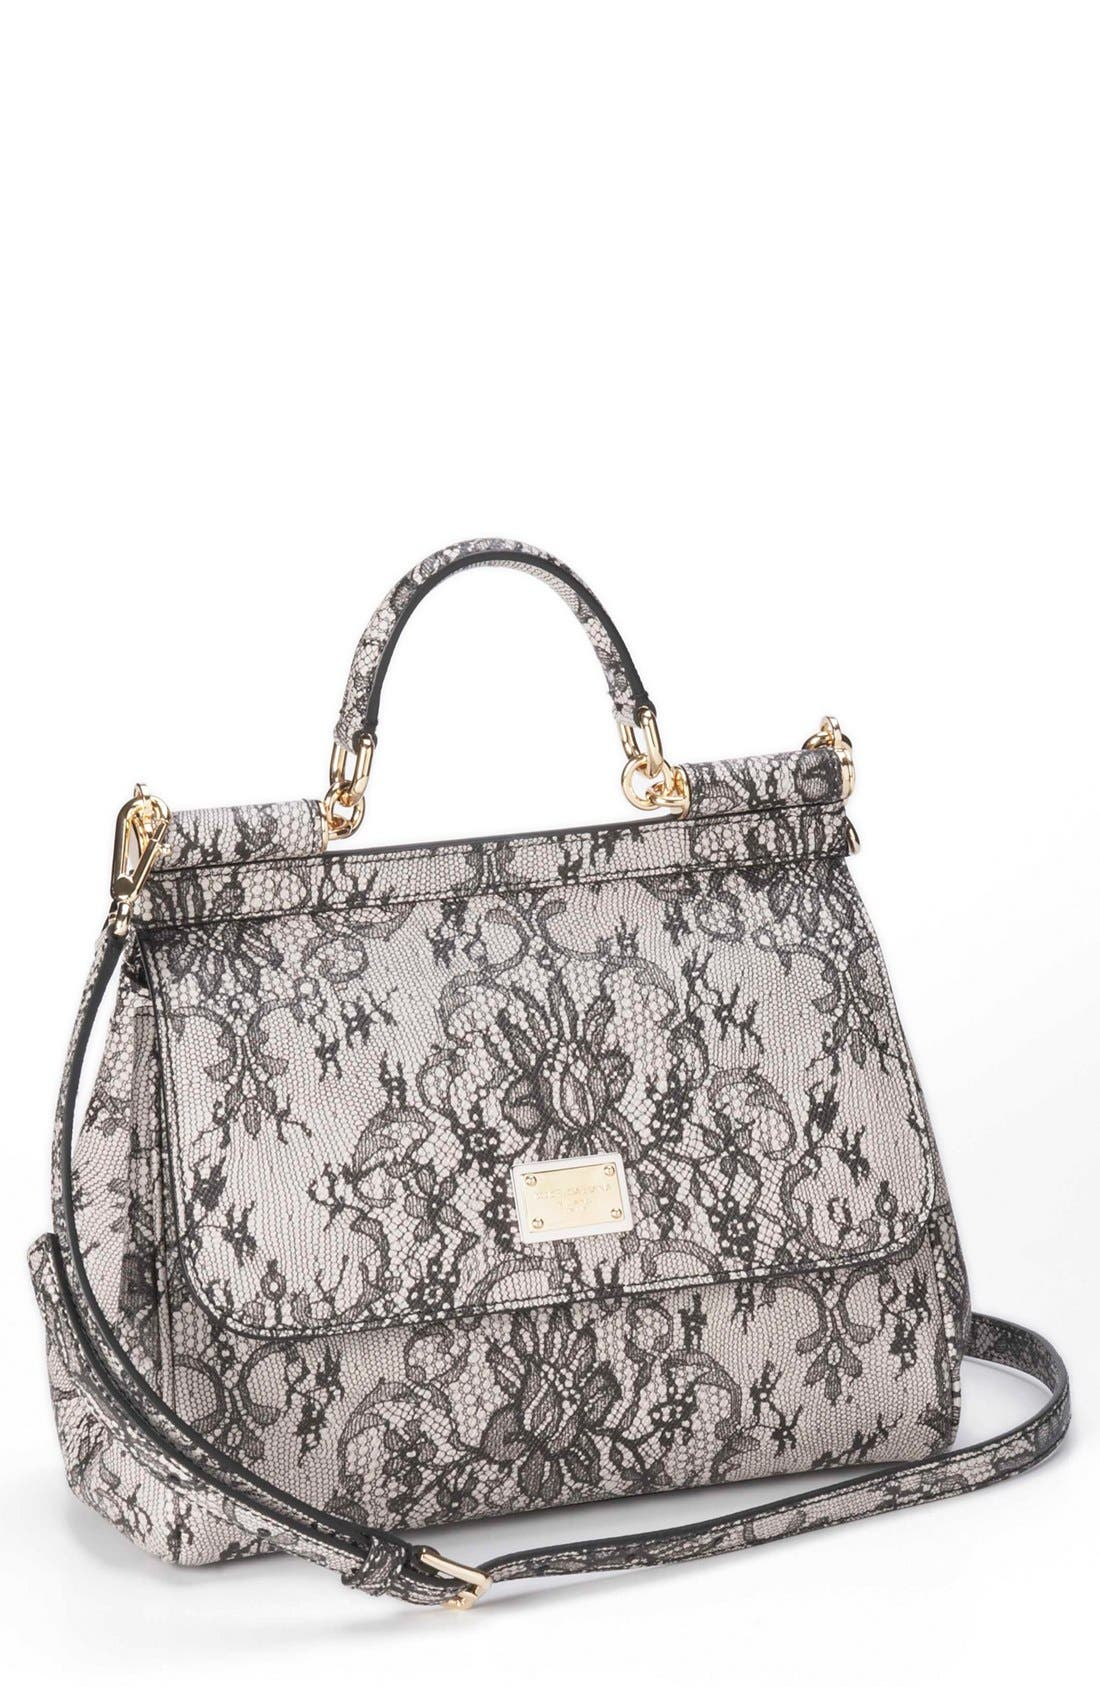 Alternate Image 1 Selected - Dolce&Gabbana 'Miss Sicily - Printed Lace' Top Handle Leather Satchel, Small